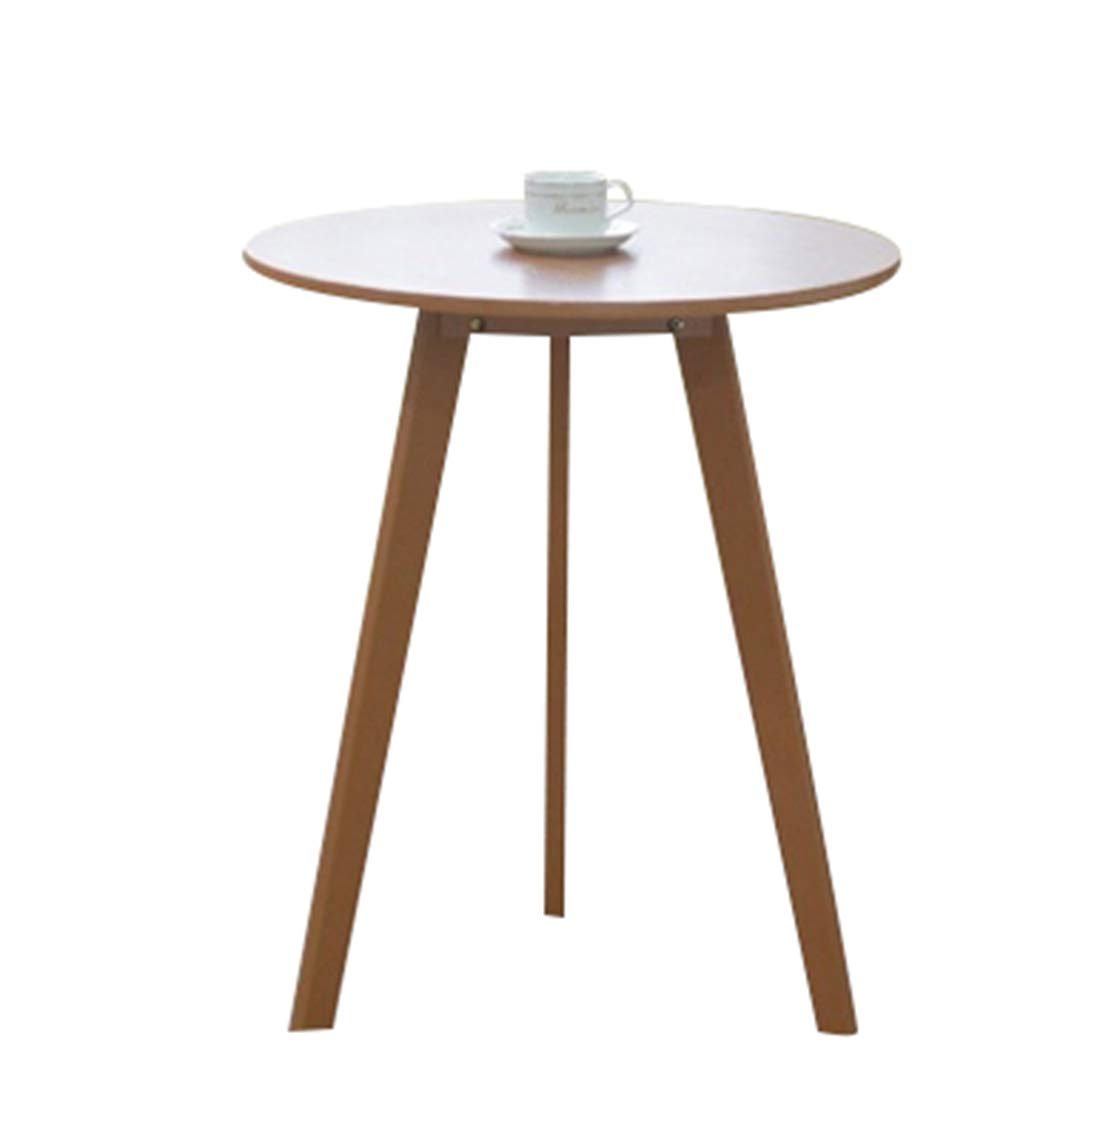 B 6070CM Solid Wood Round Coffee Table Nordic Casual Coffee Table Living Room Bedroom Table,B,60  70CM